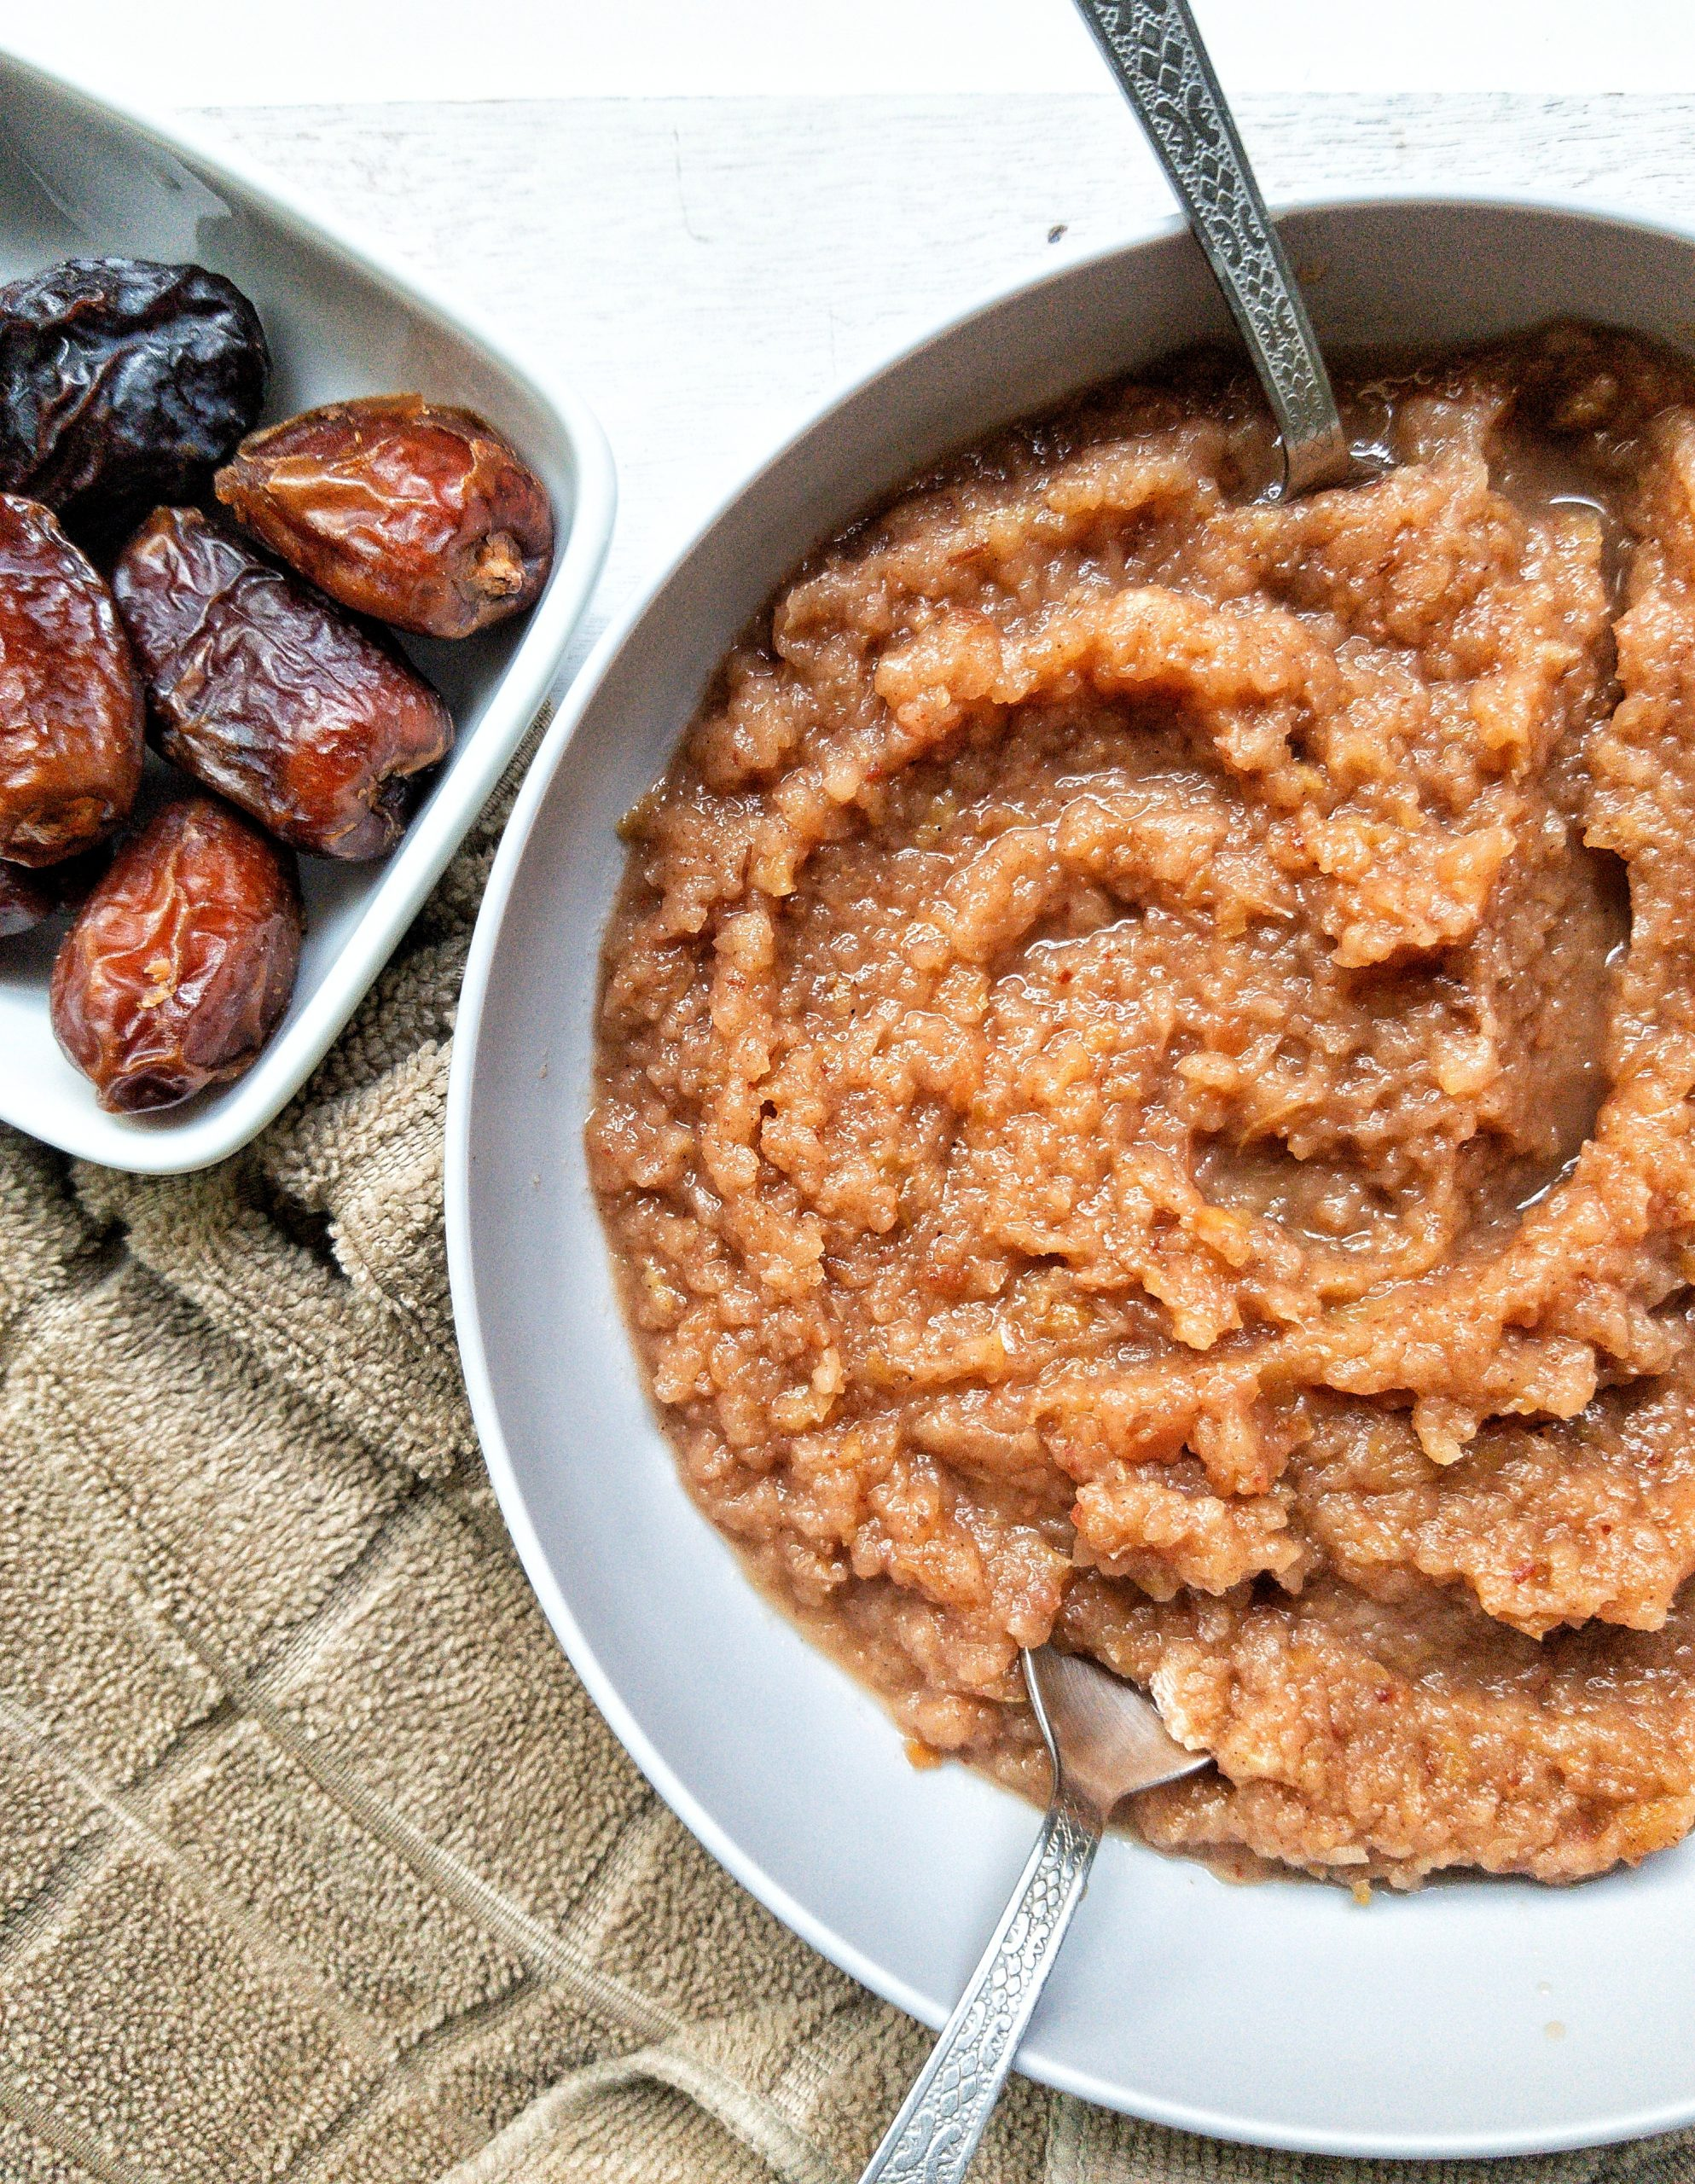 Homemade vegan applesauce in a large bowl with a side of dates